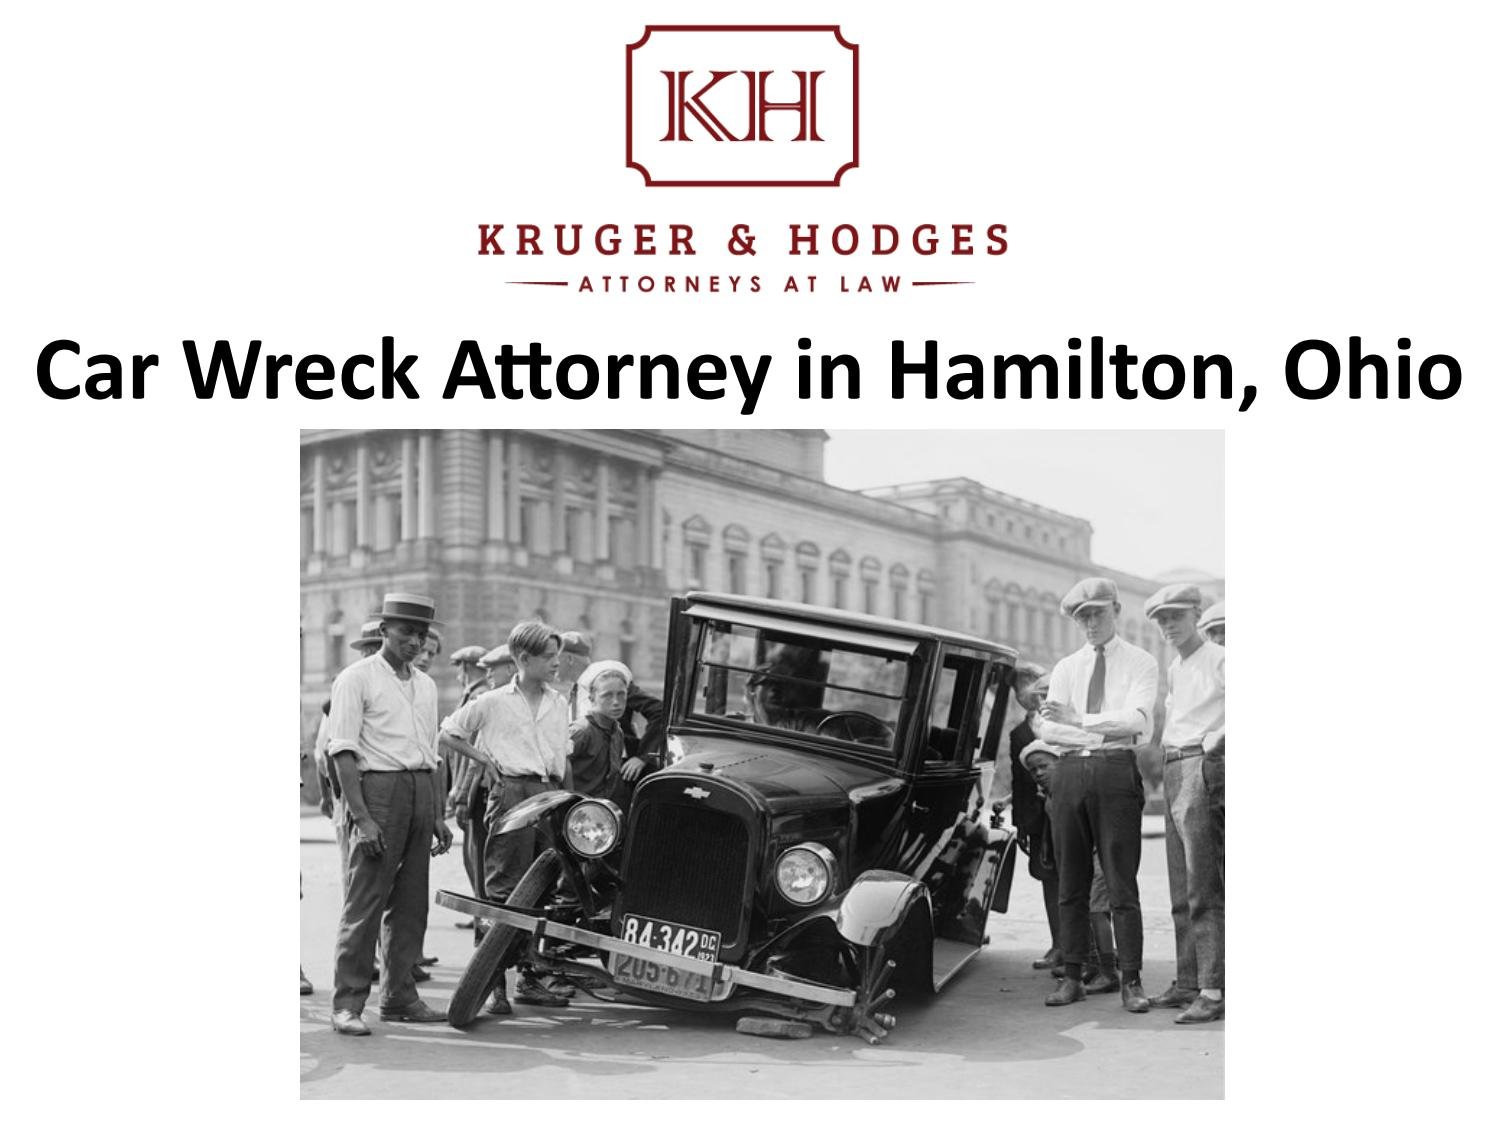 Car Wreck Attorney in Hamilton, Ohio by Kruger & Hodges LLC